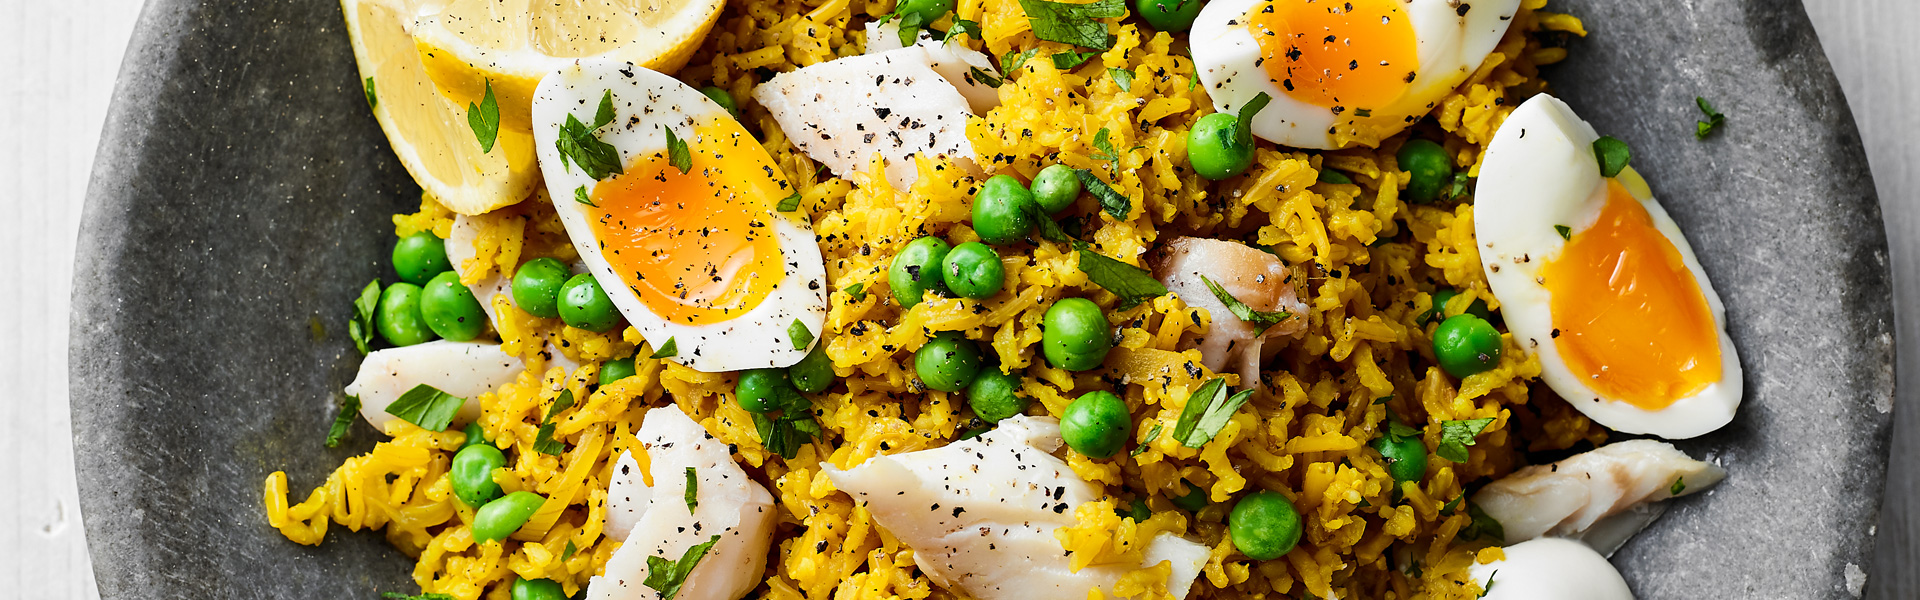 Liz Earle: Turmeric Spiced Kedgeree Recipe